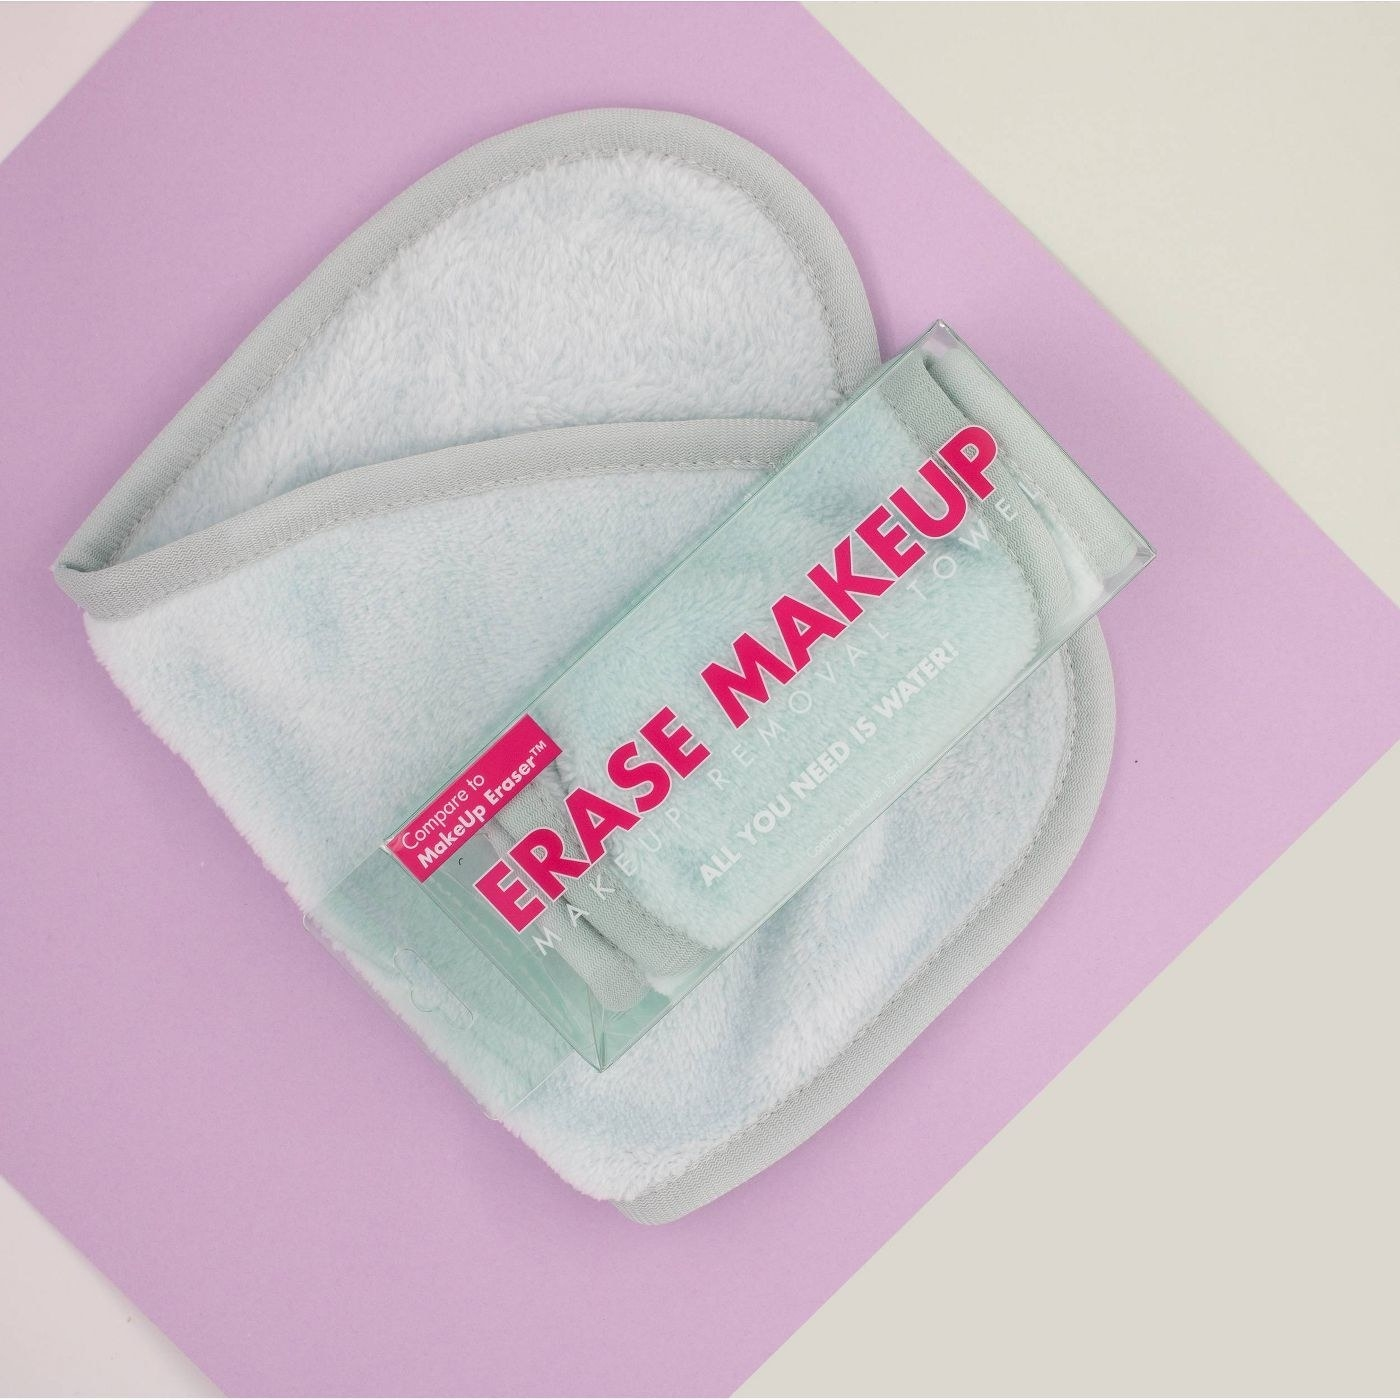 mint green makeup cleansing cloth